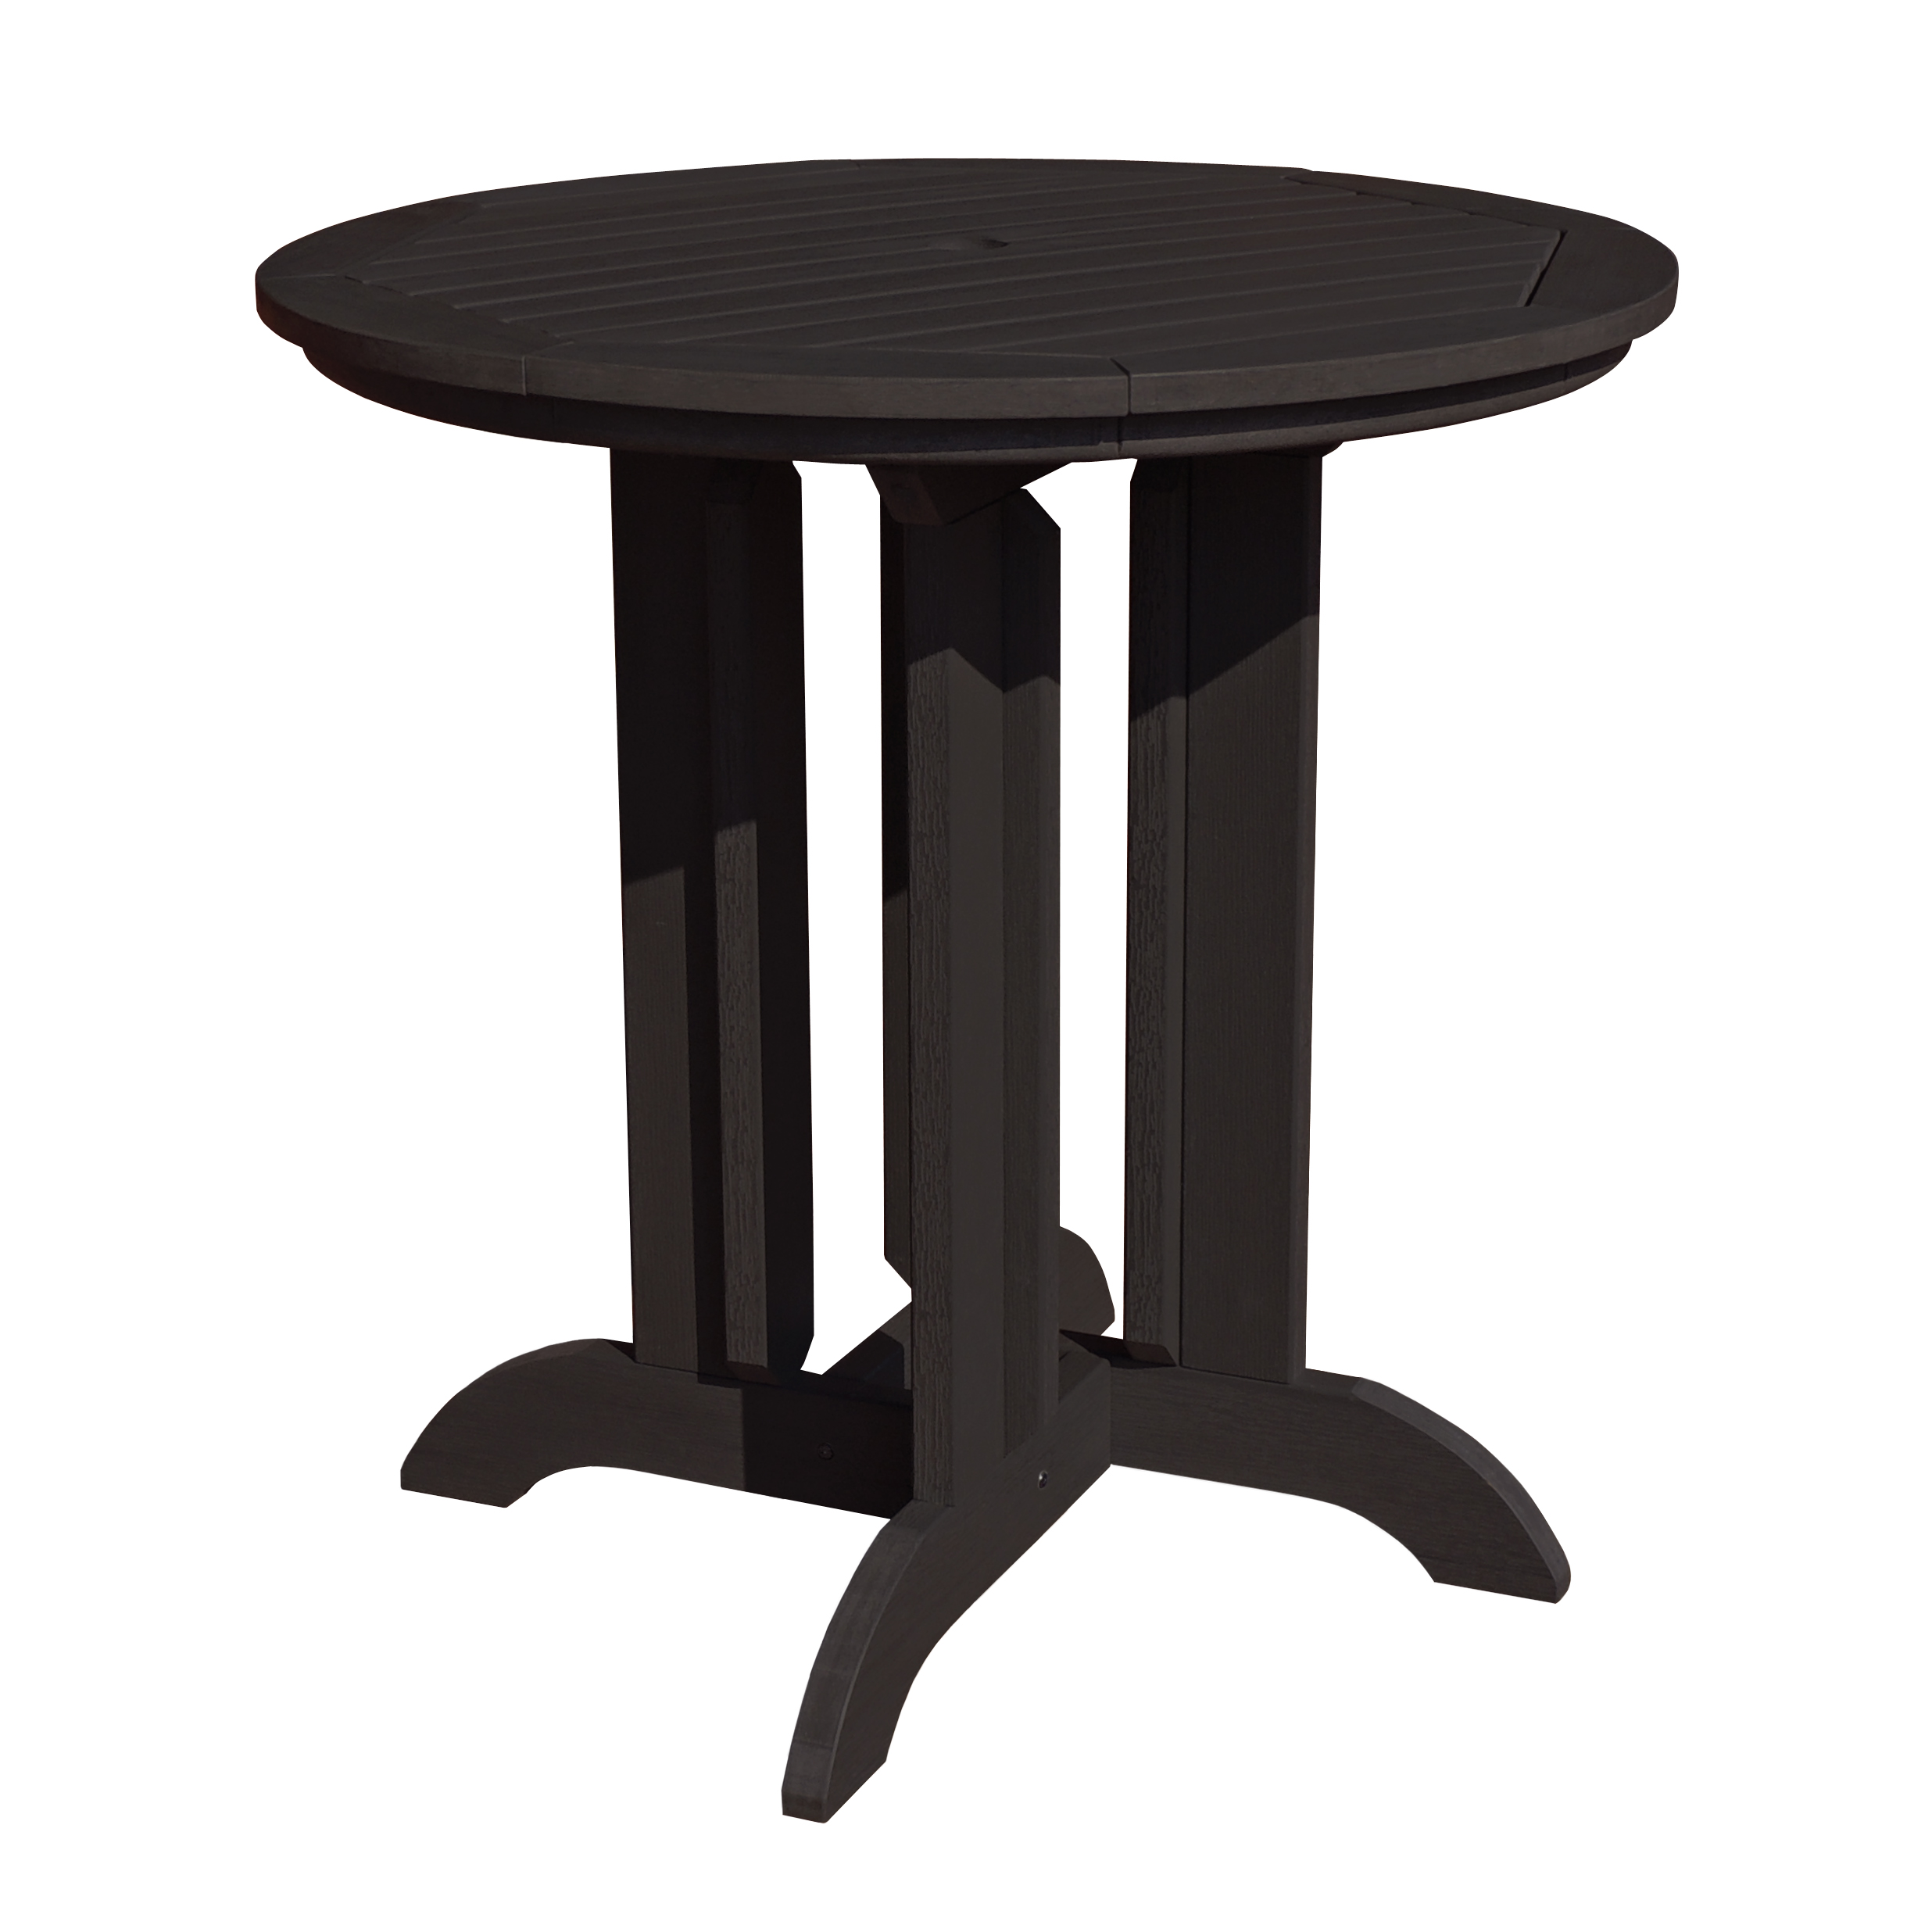 "highwood® Eco-Friendly Round 36"" Diameter Counter Dining Table"